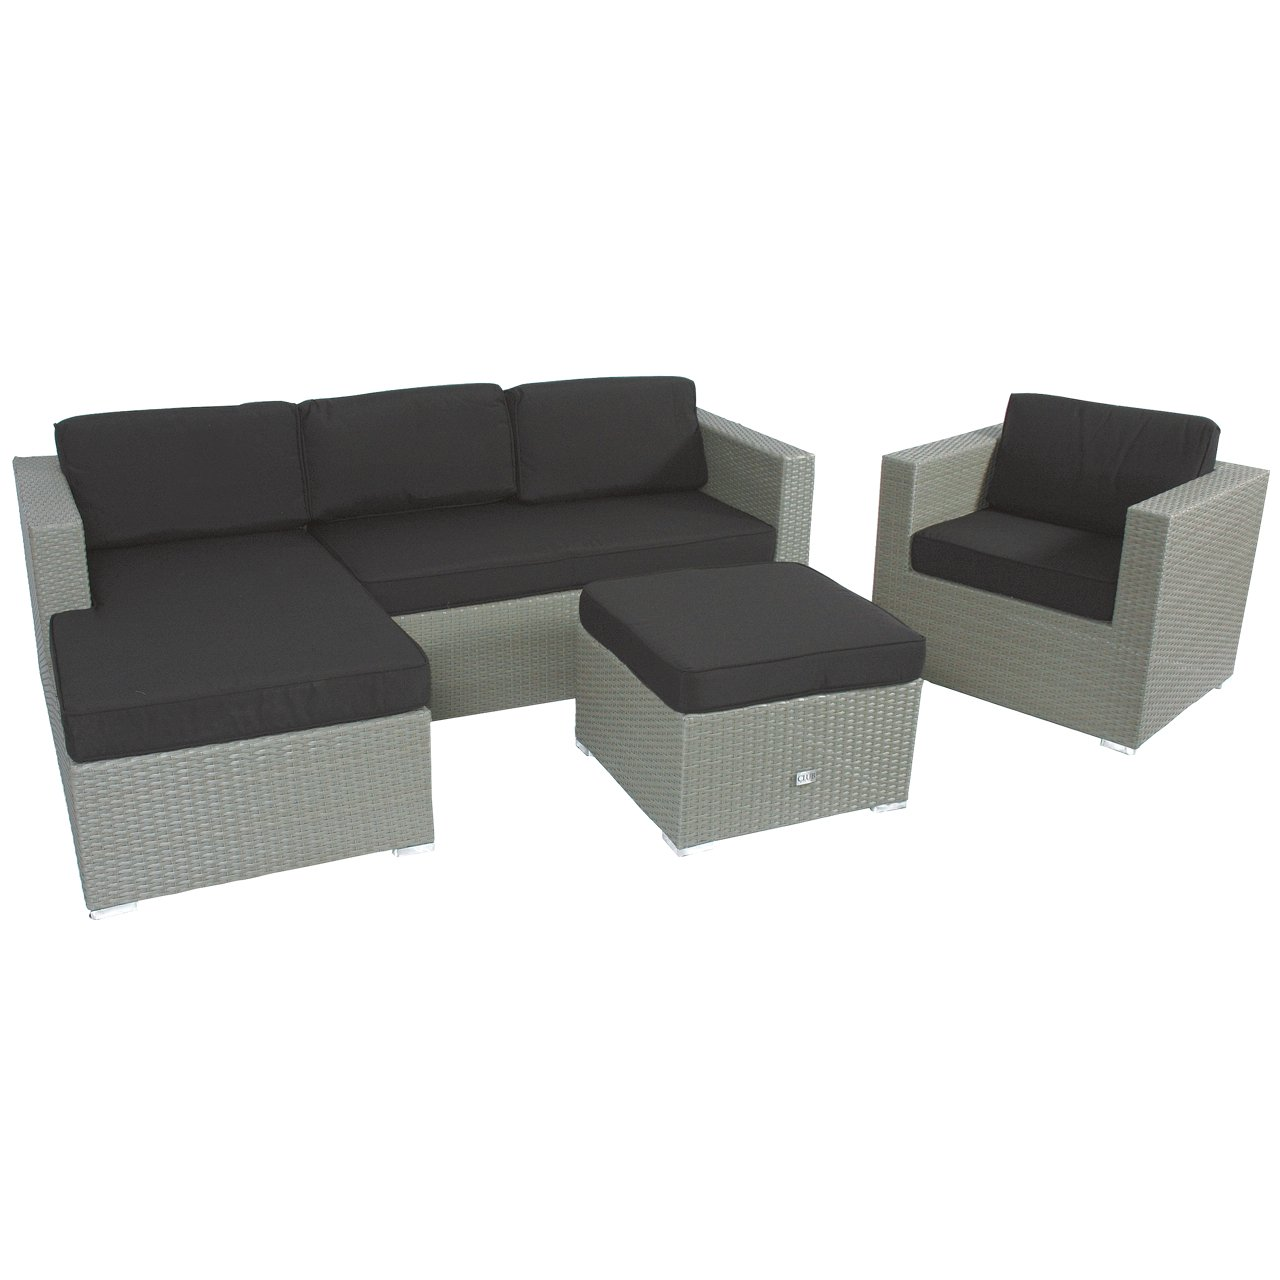 poly rattan ecklounge set 3tlg grau gartenm bel hocker stuhl g nstig online kaufen. Black Bedroom Furniture Sets. Home Design Ideas